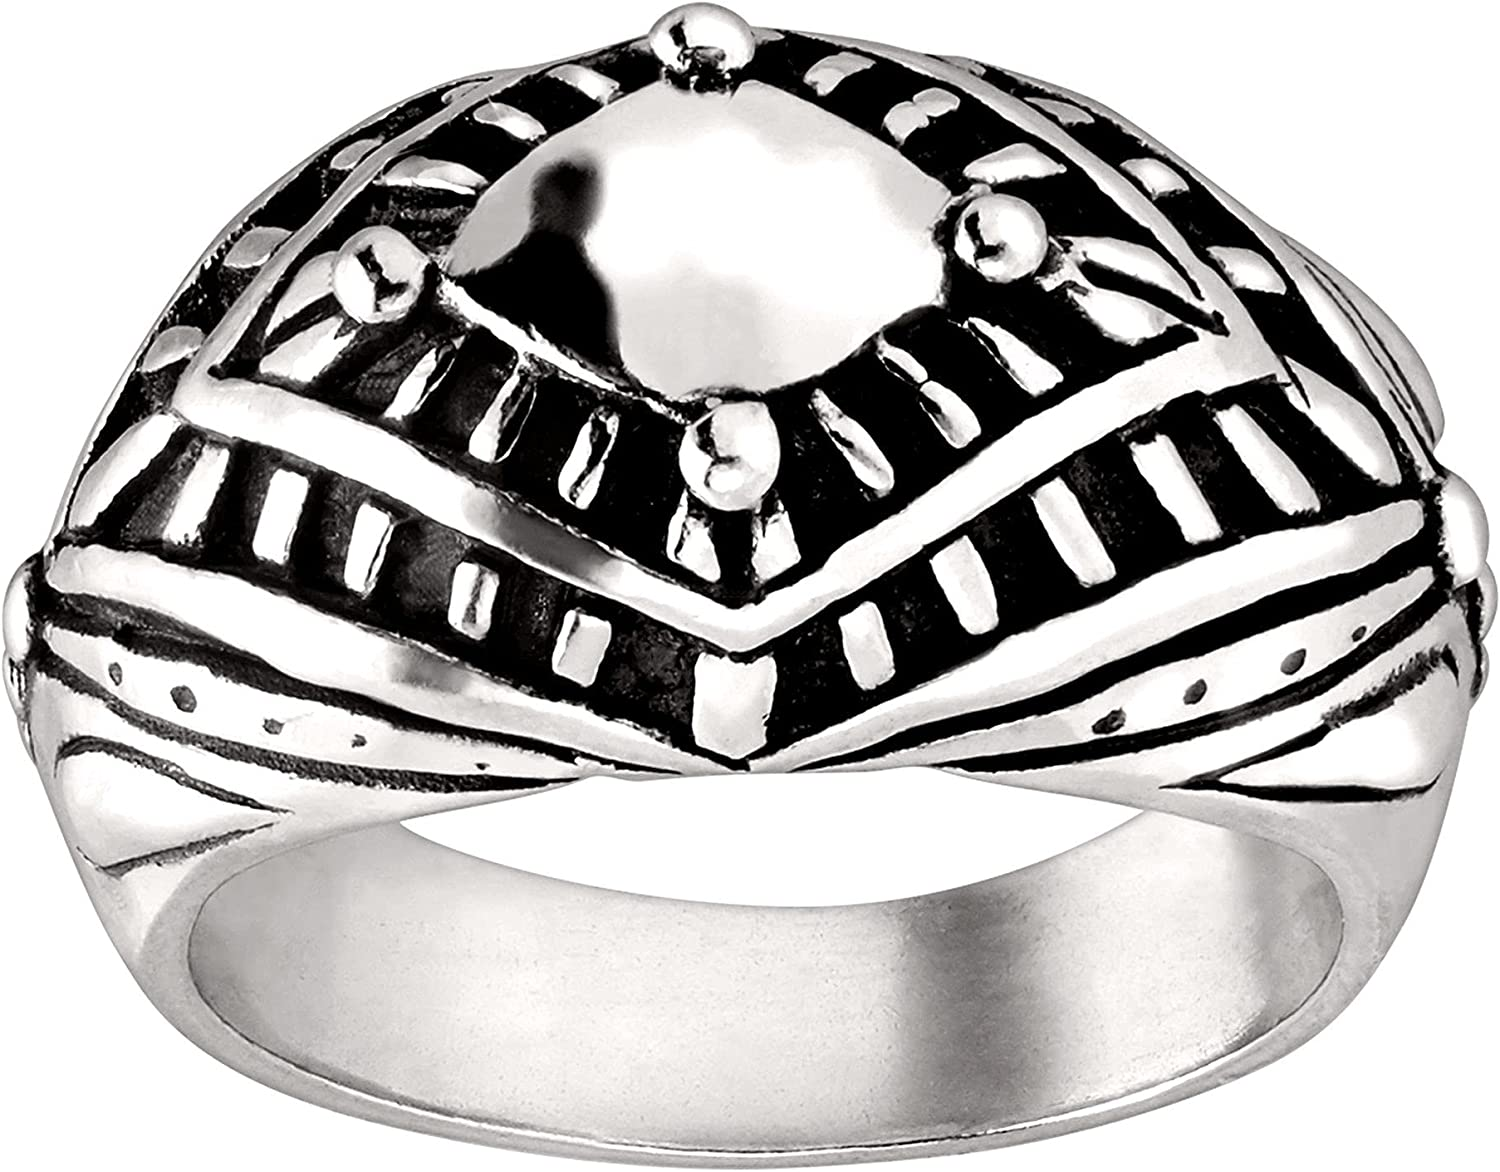 Silpada 'Regalia' Etched Ring Sterling Save Clearance SALE! Limited time! money in Silver